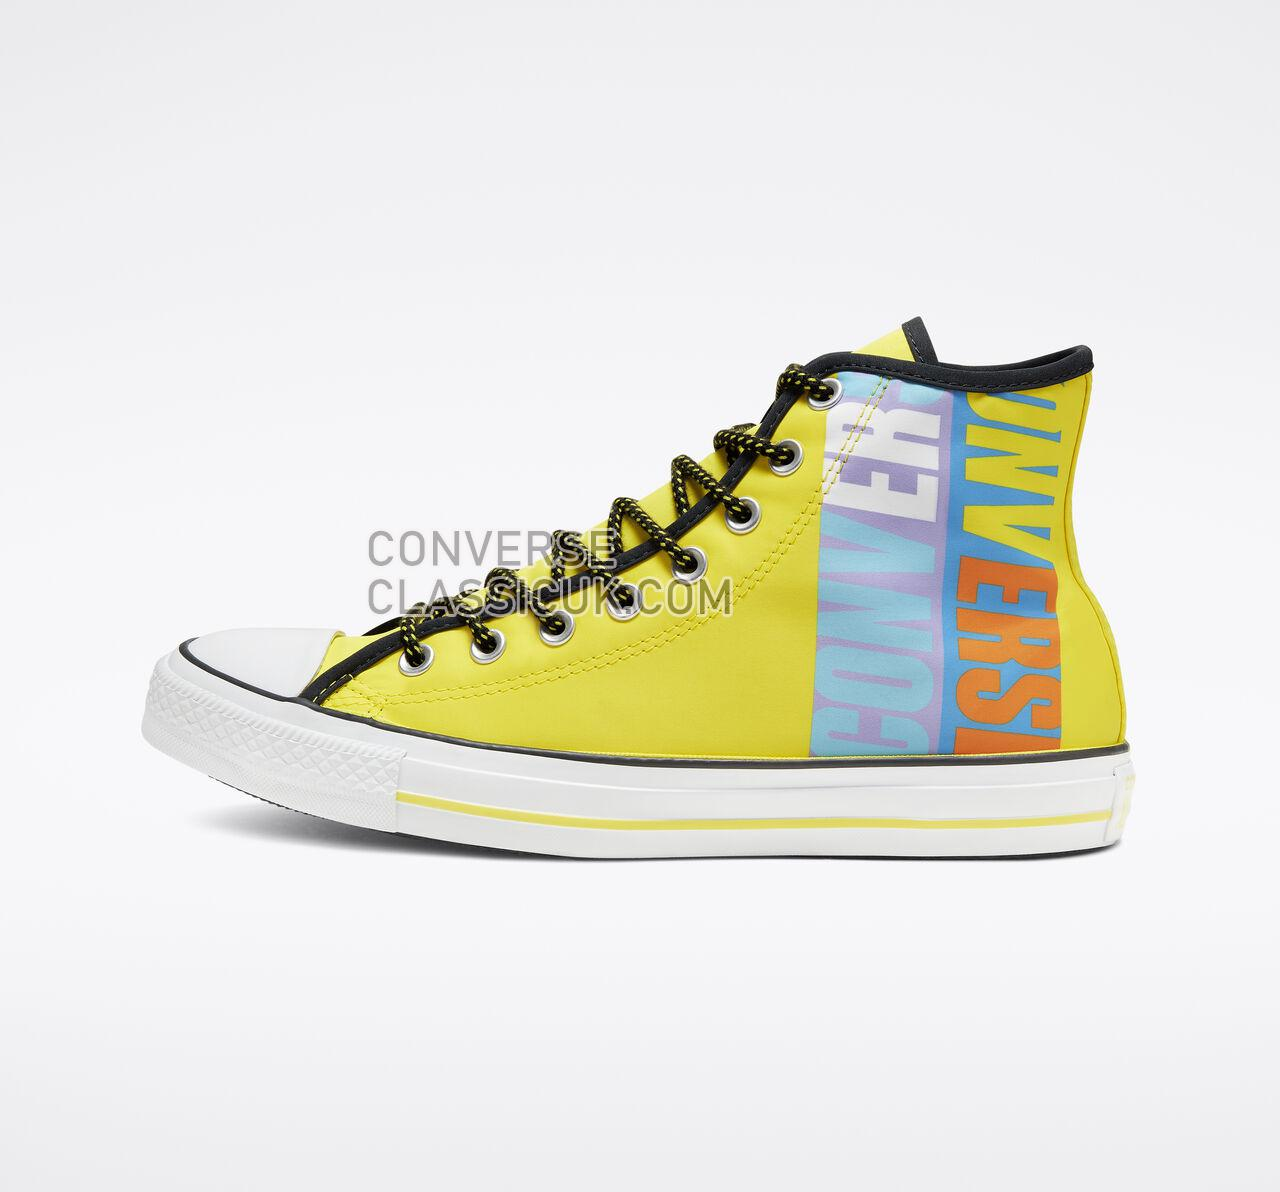 Converse Chuck Taylor All Star Get Tubed High Top Mens Womens Unisex 164092F Fresh Yellow/Black/White Shoes